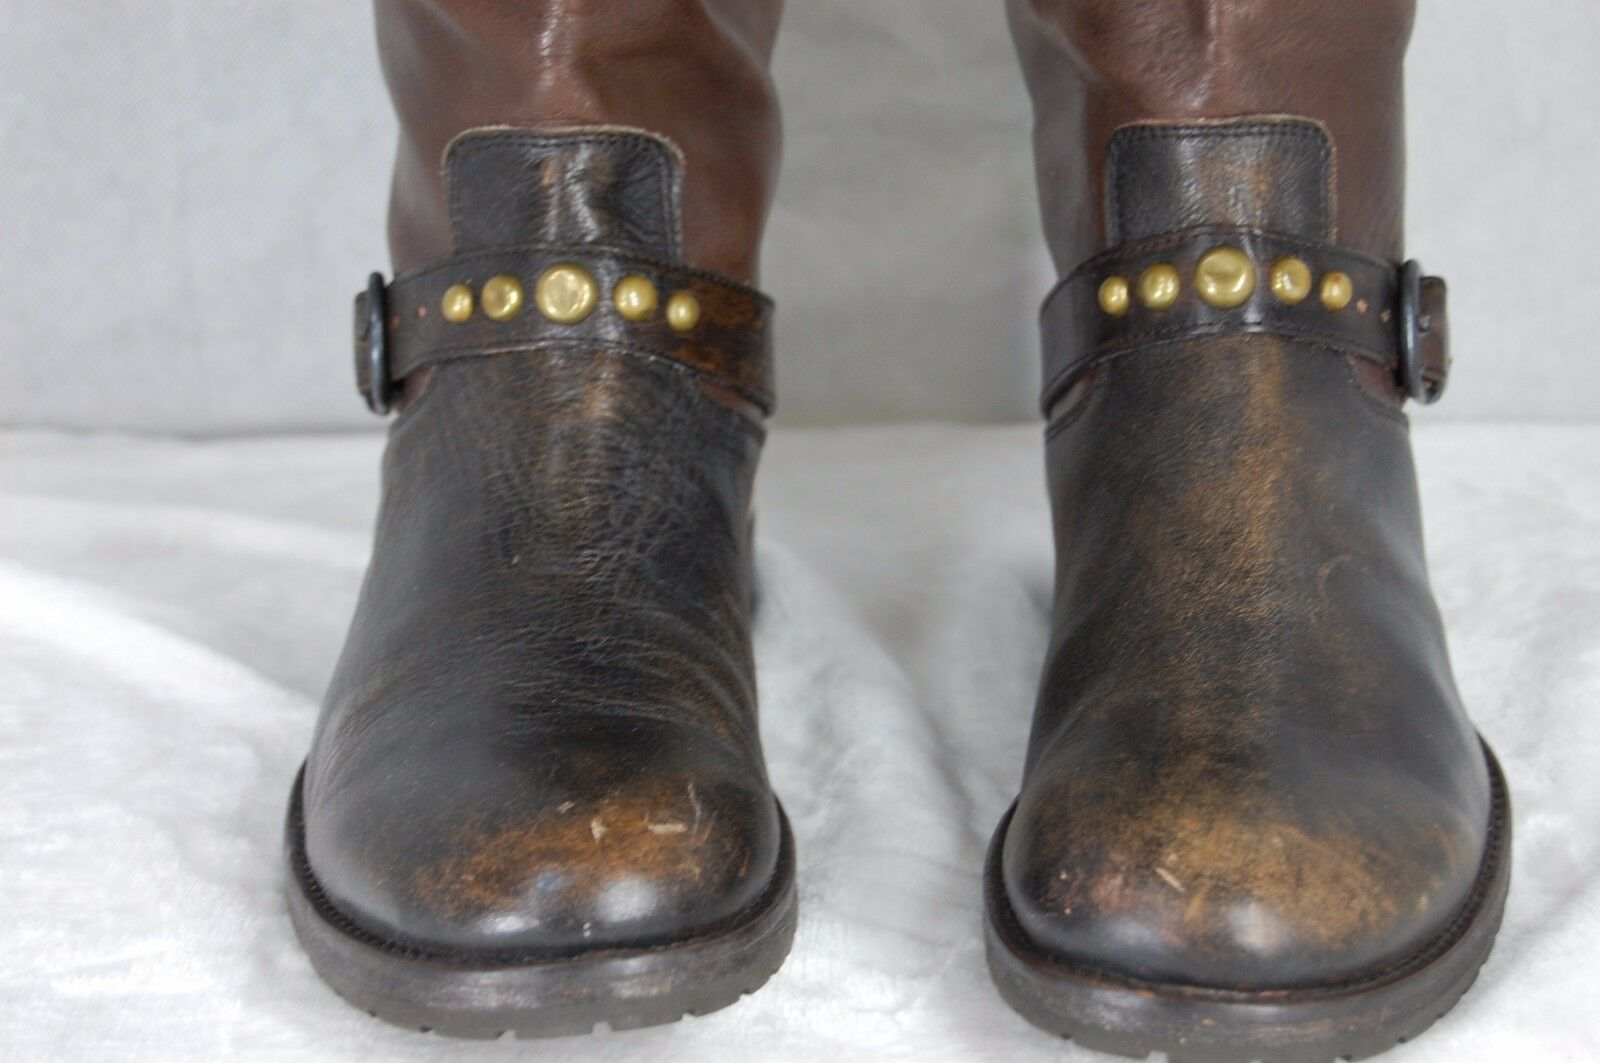 HTC HAND MADE IN ITALY WOMEN LEATHER RIDING BIKER TALL 11 Stiefel EU 41 US 11 TALL e9fb27